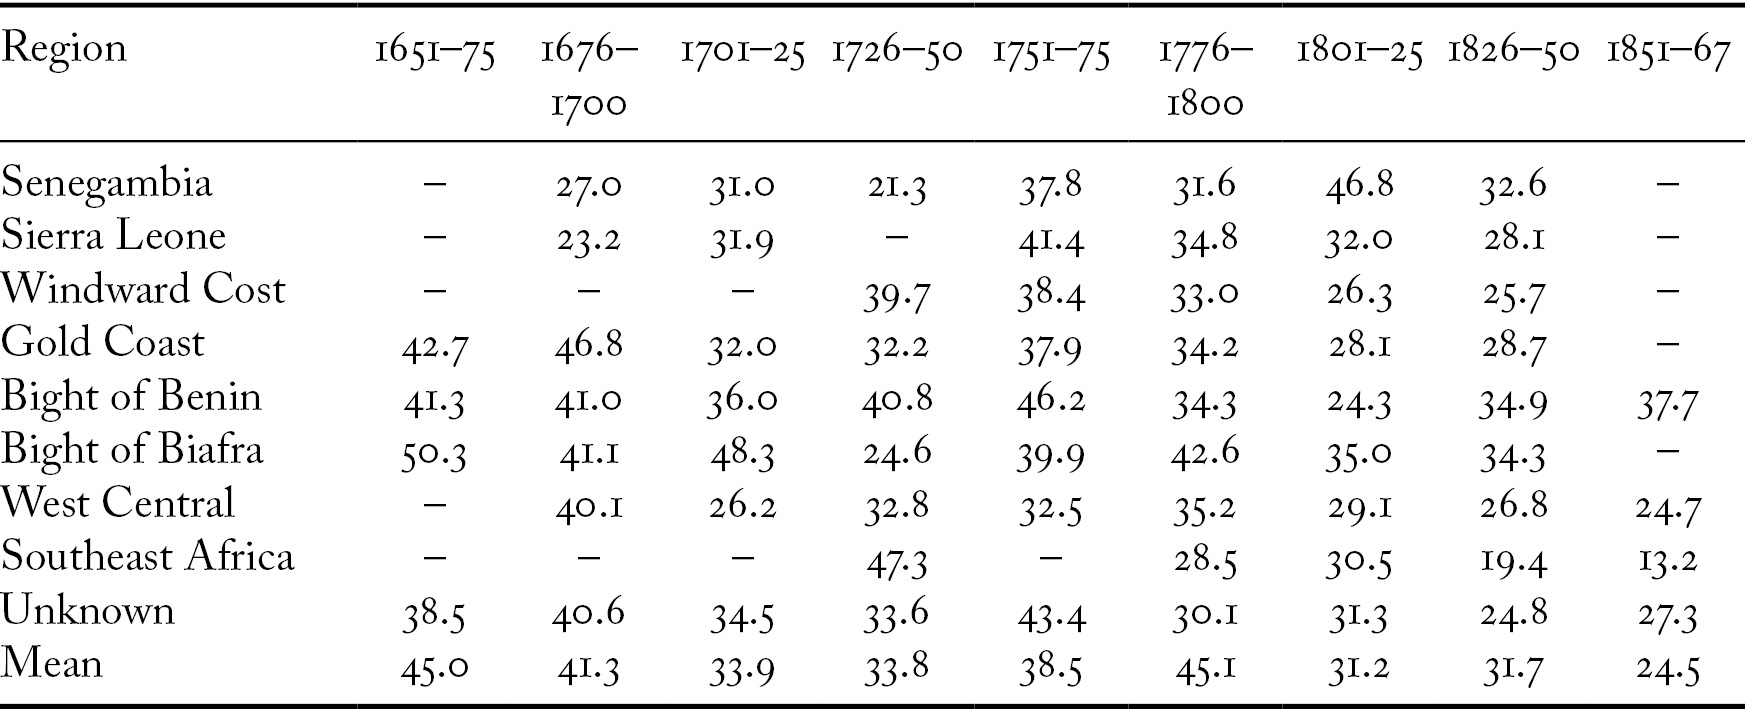 Considering Slave Demography in the New World (Chapter 3